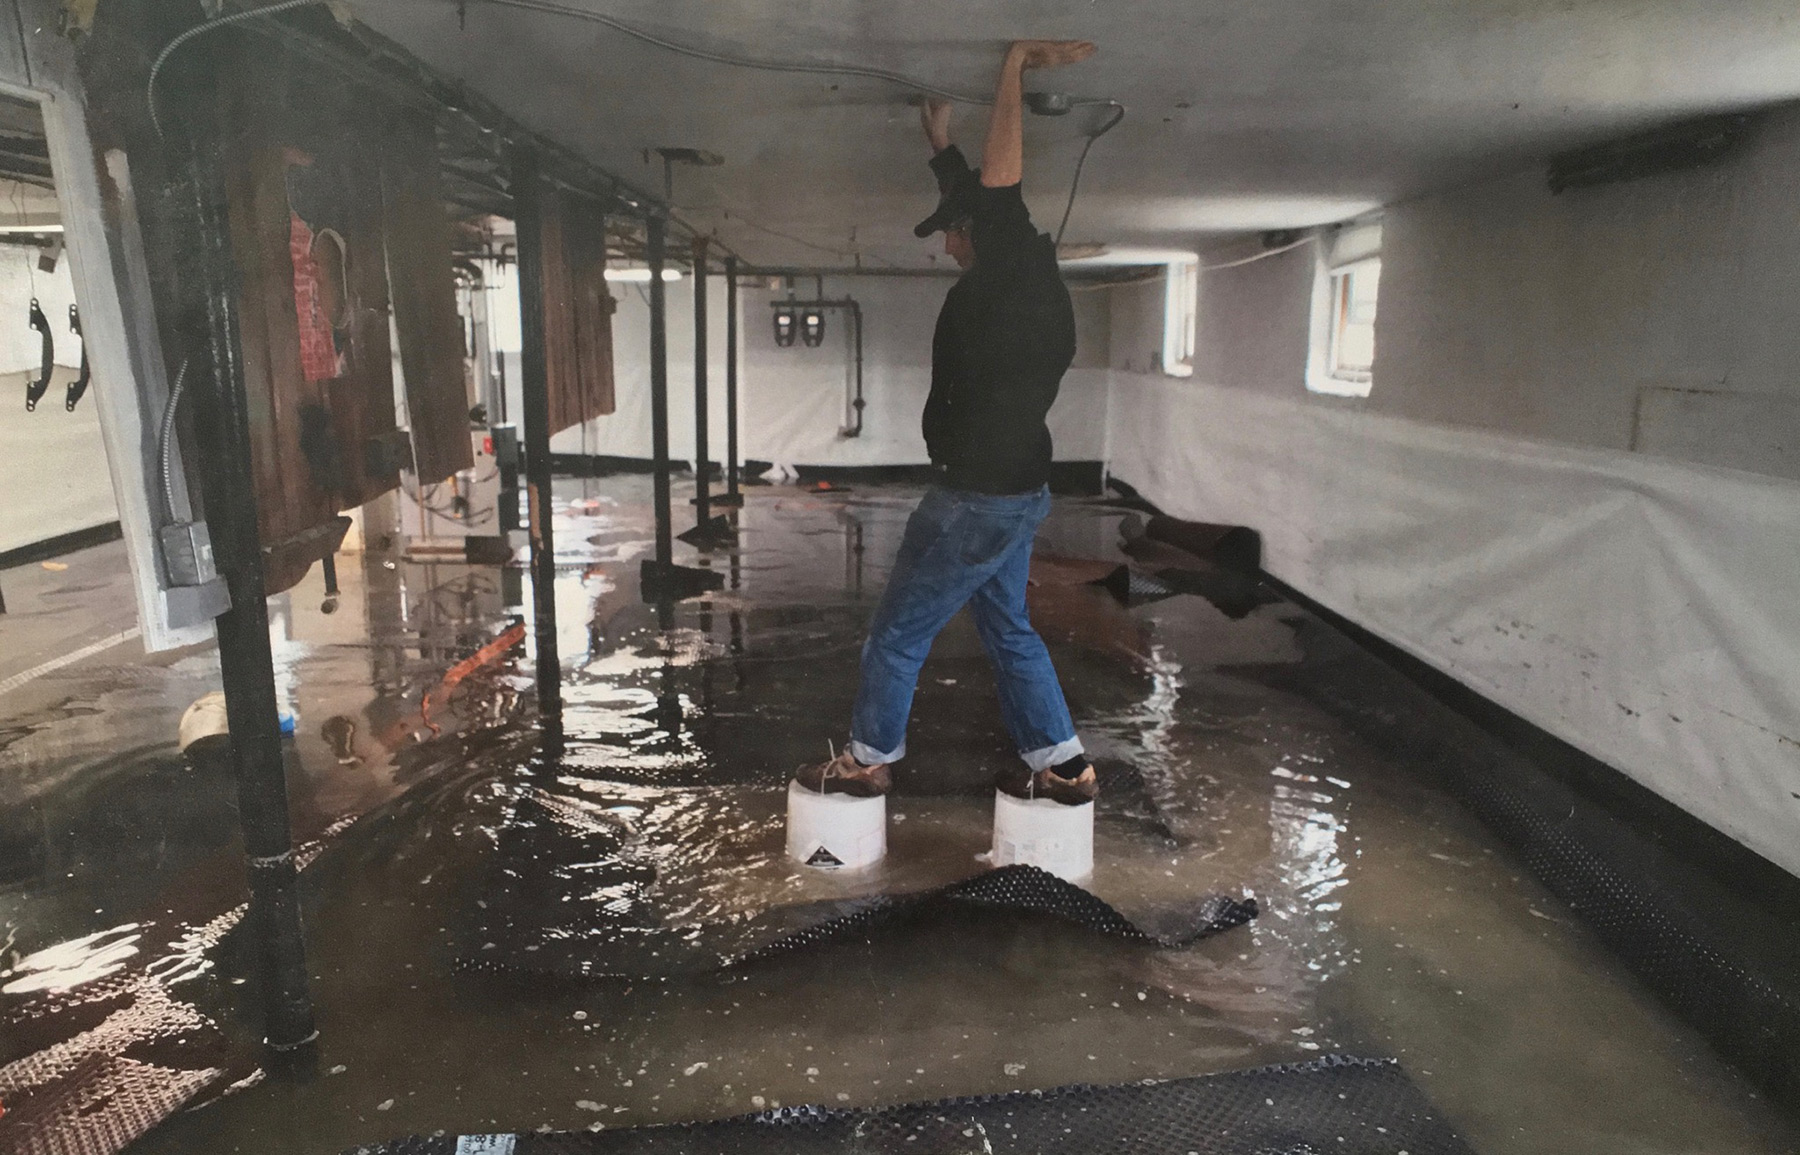 Crawl space technician walking on buckets to avoid severe flooding in residential basement